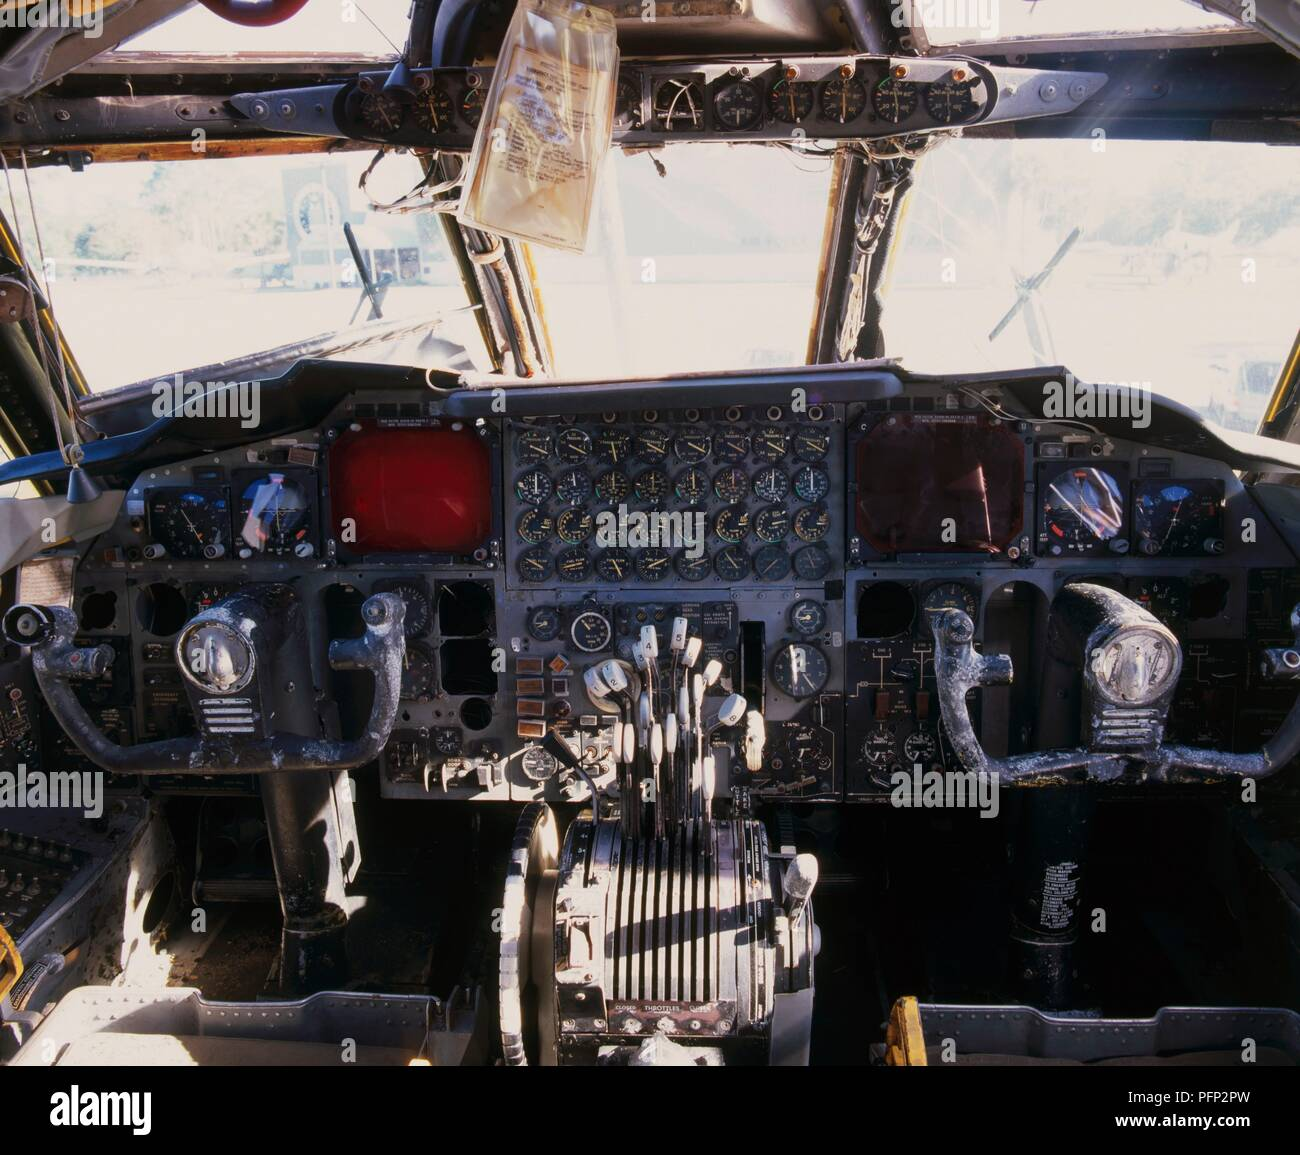 Cockpit interior of a Boeing B-52G Stratofortress (B-52) bomber - Stock Image